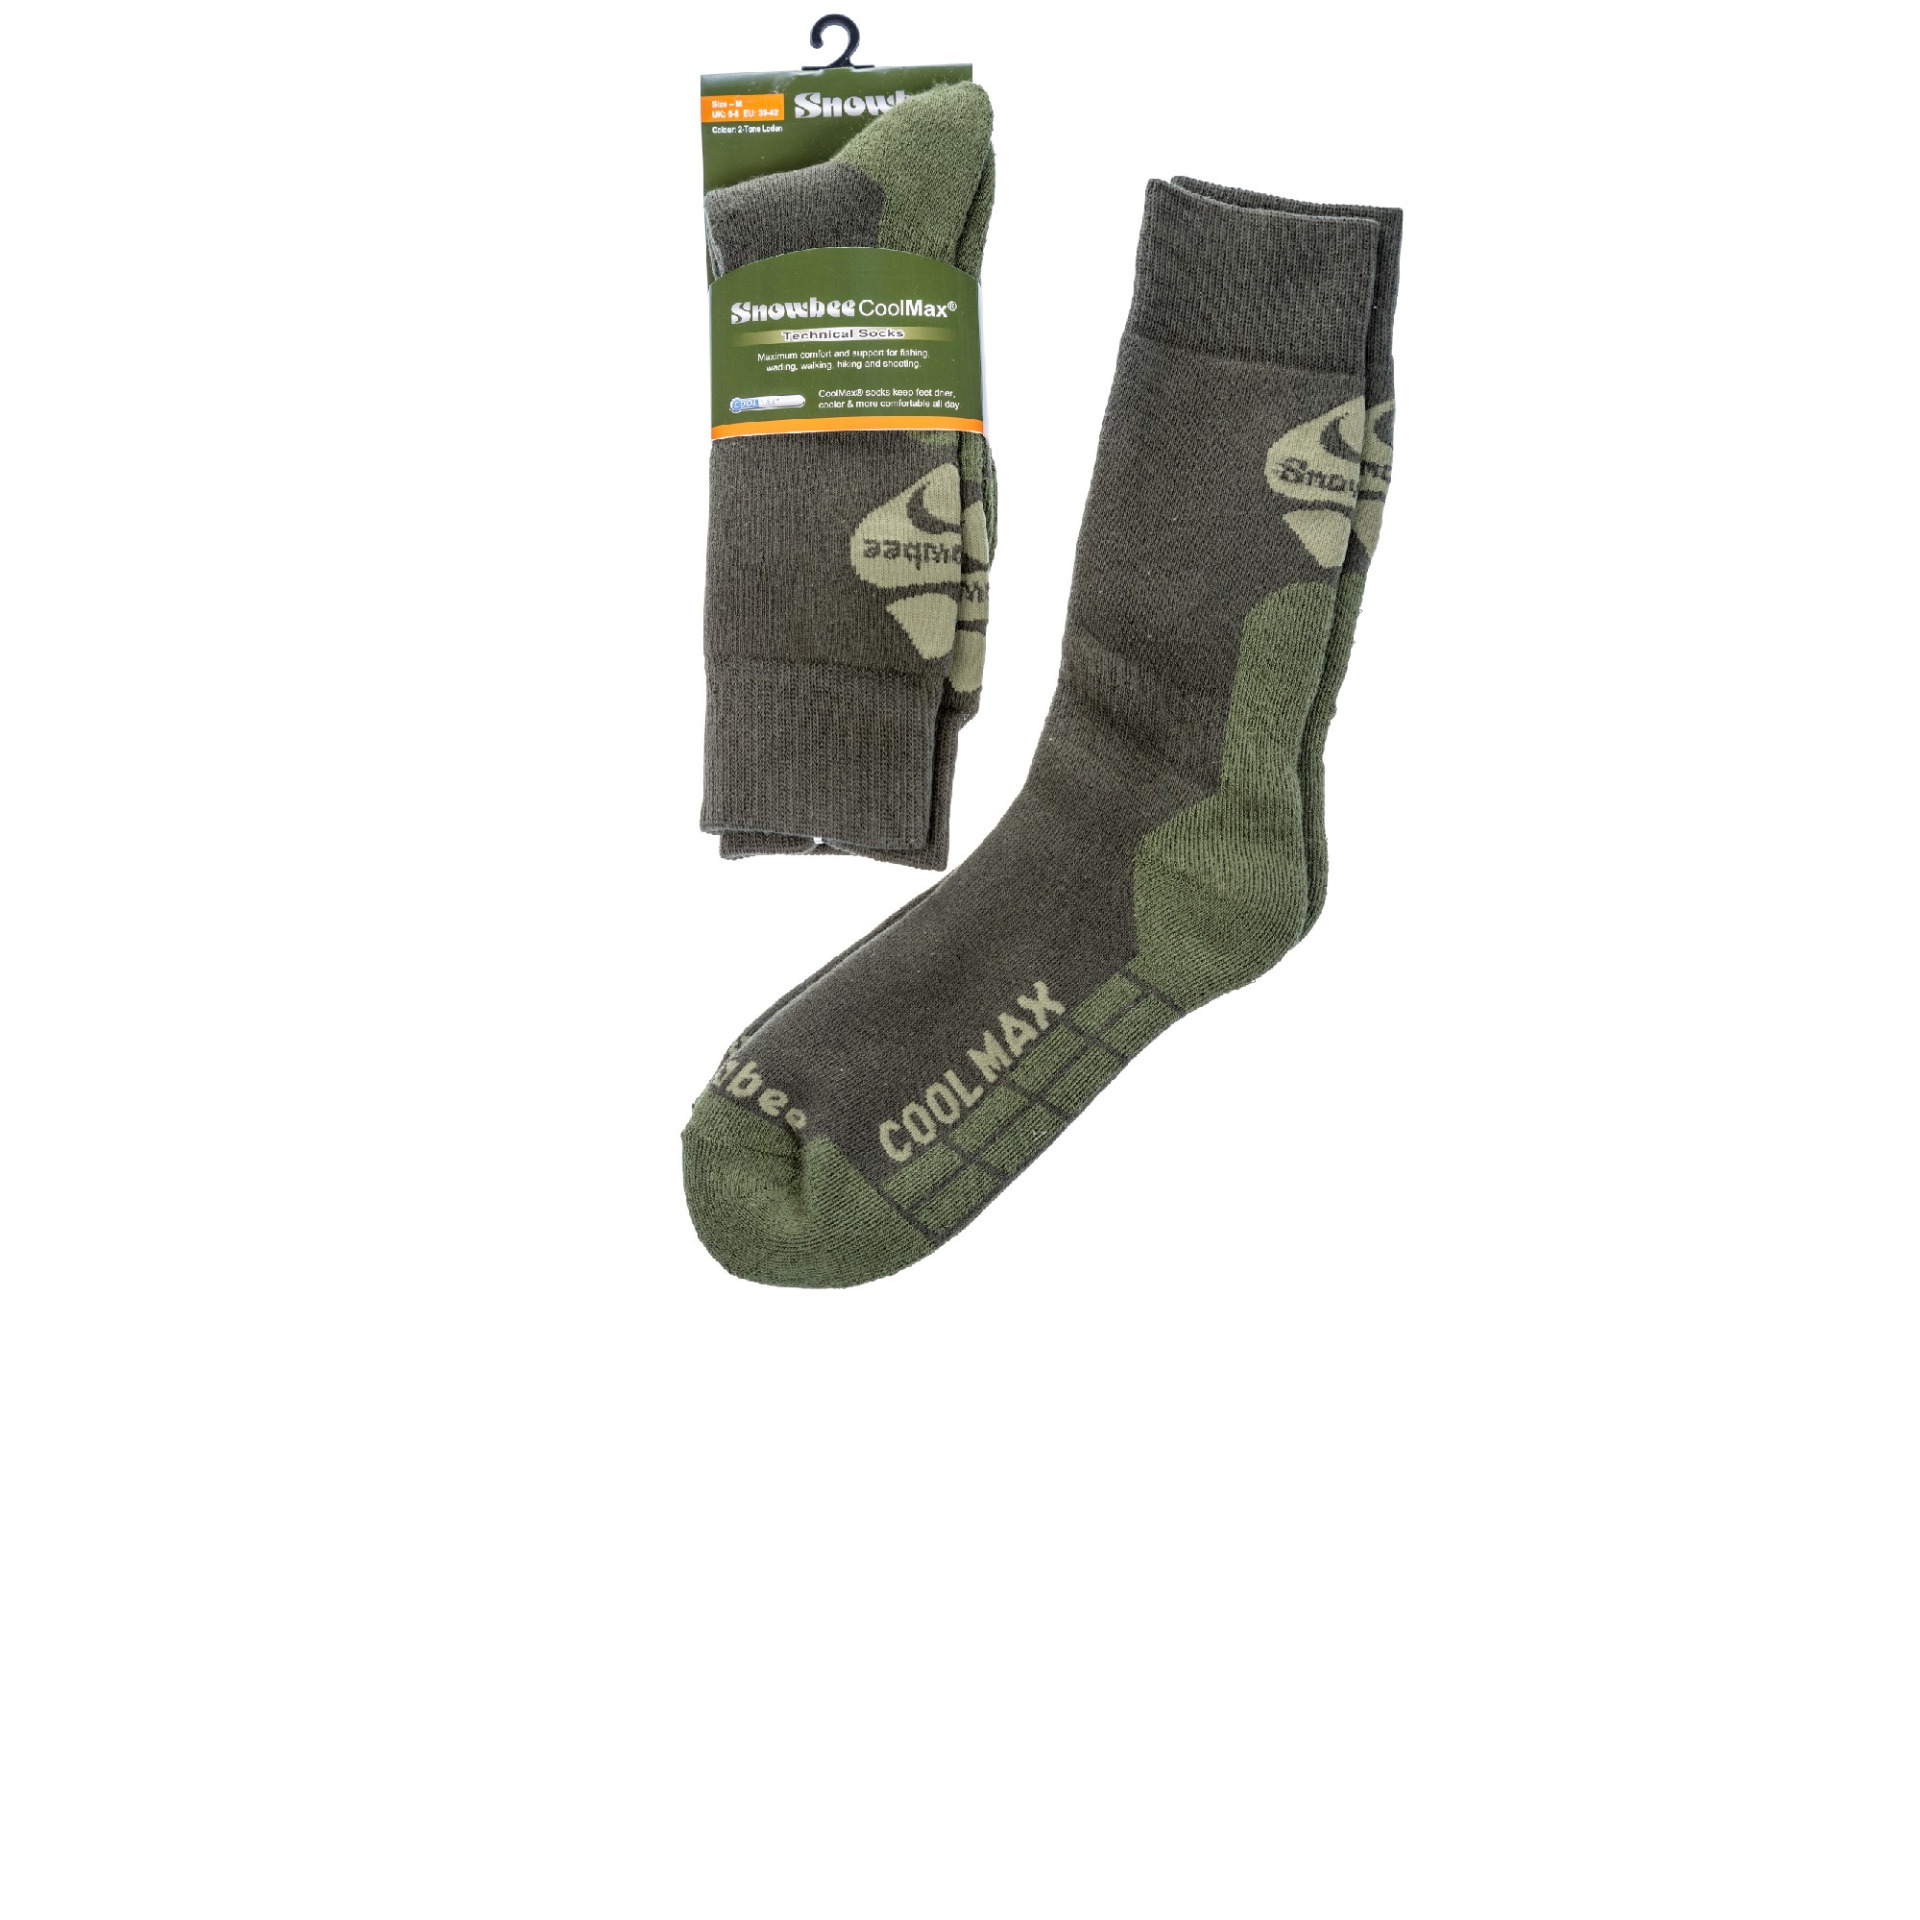 Skarpety Snowbee CoolMax Technical Socks wędkarskie fly fishing flyartfishing dla wędkarza